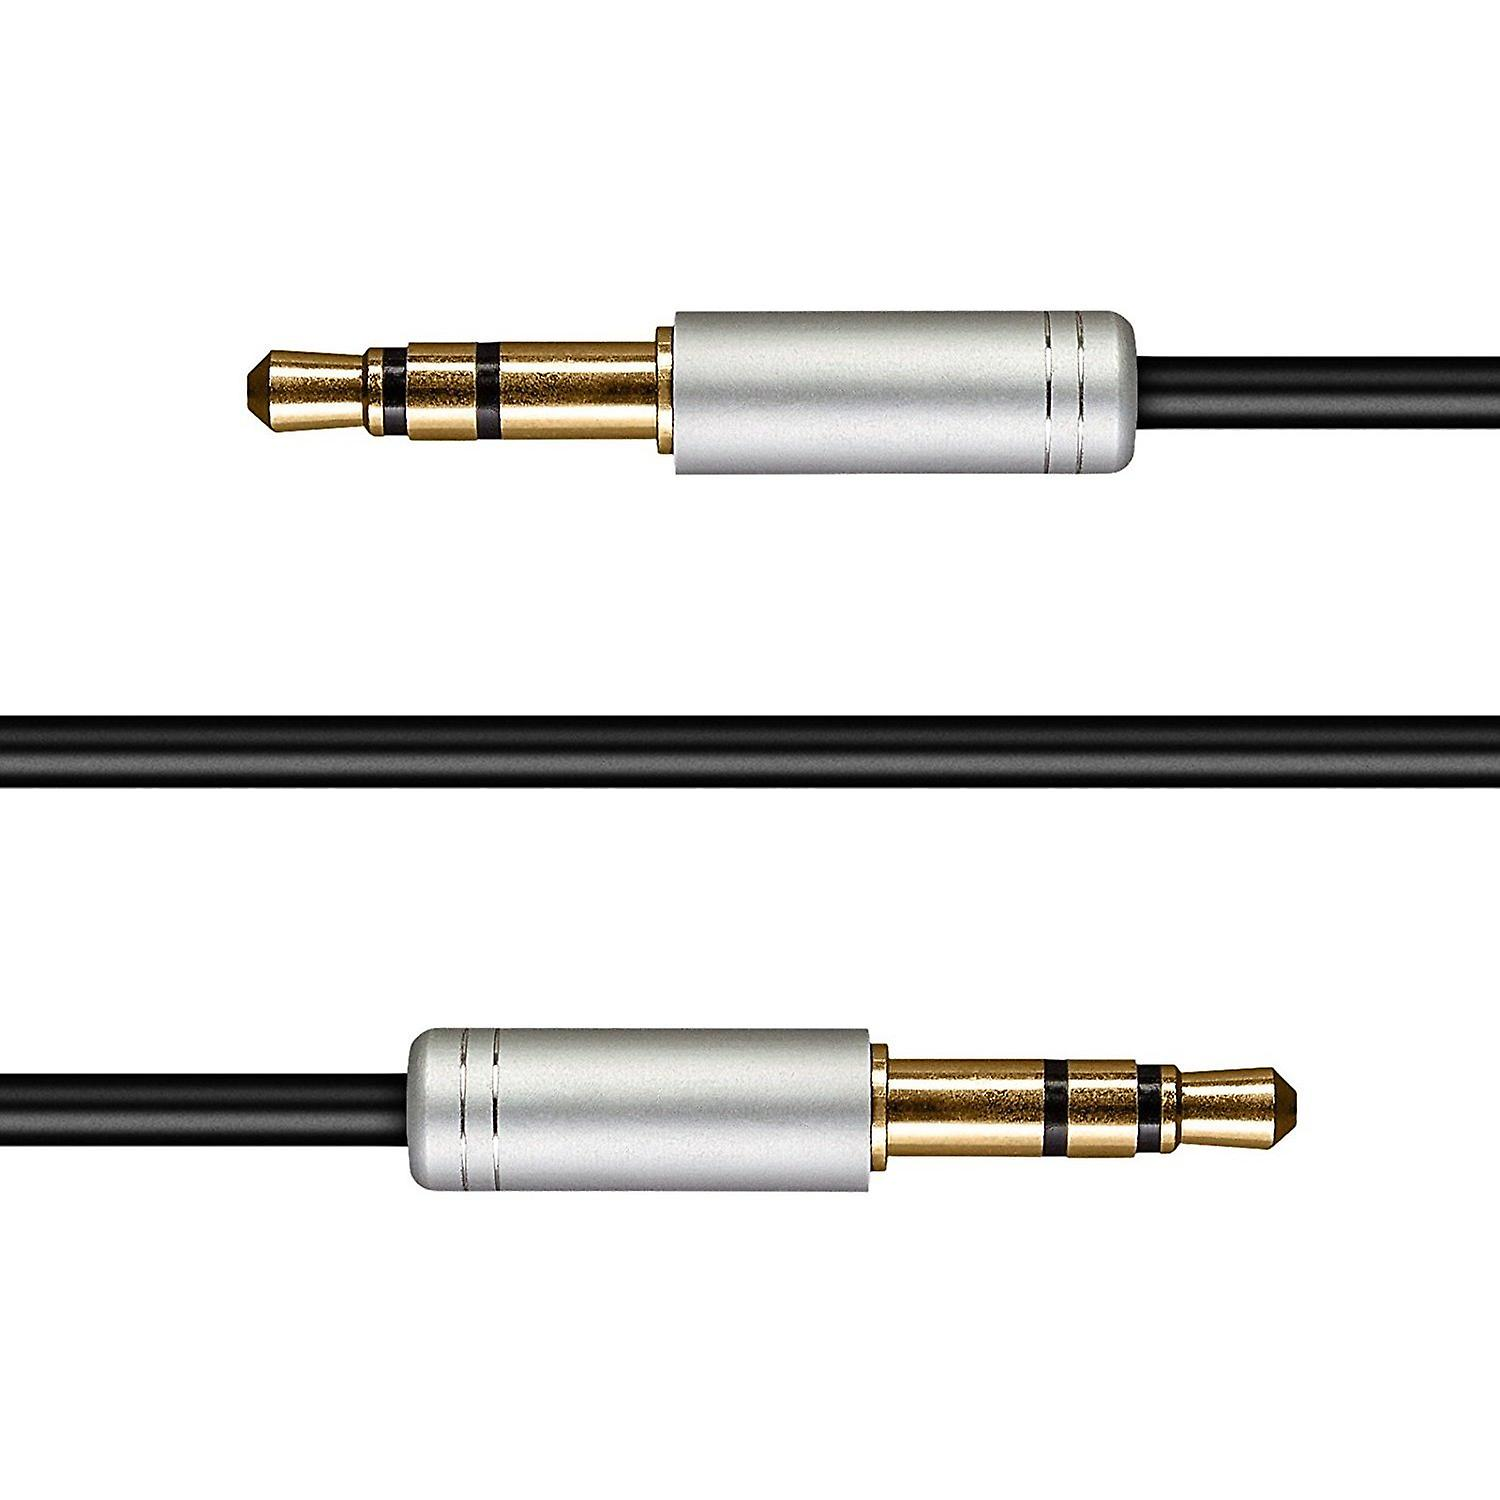 Audio Cable 1.5 Meters Premium Auxiliary Aux Audio Cable Cord